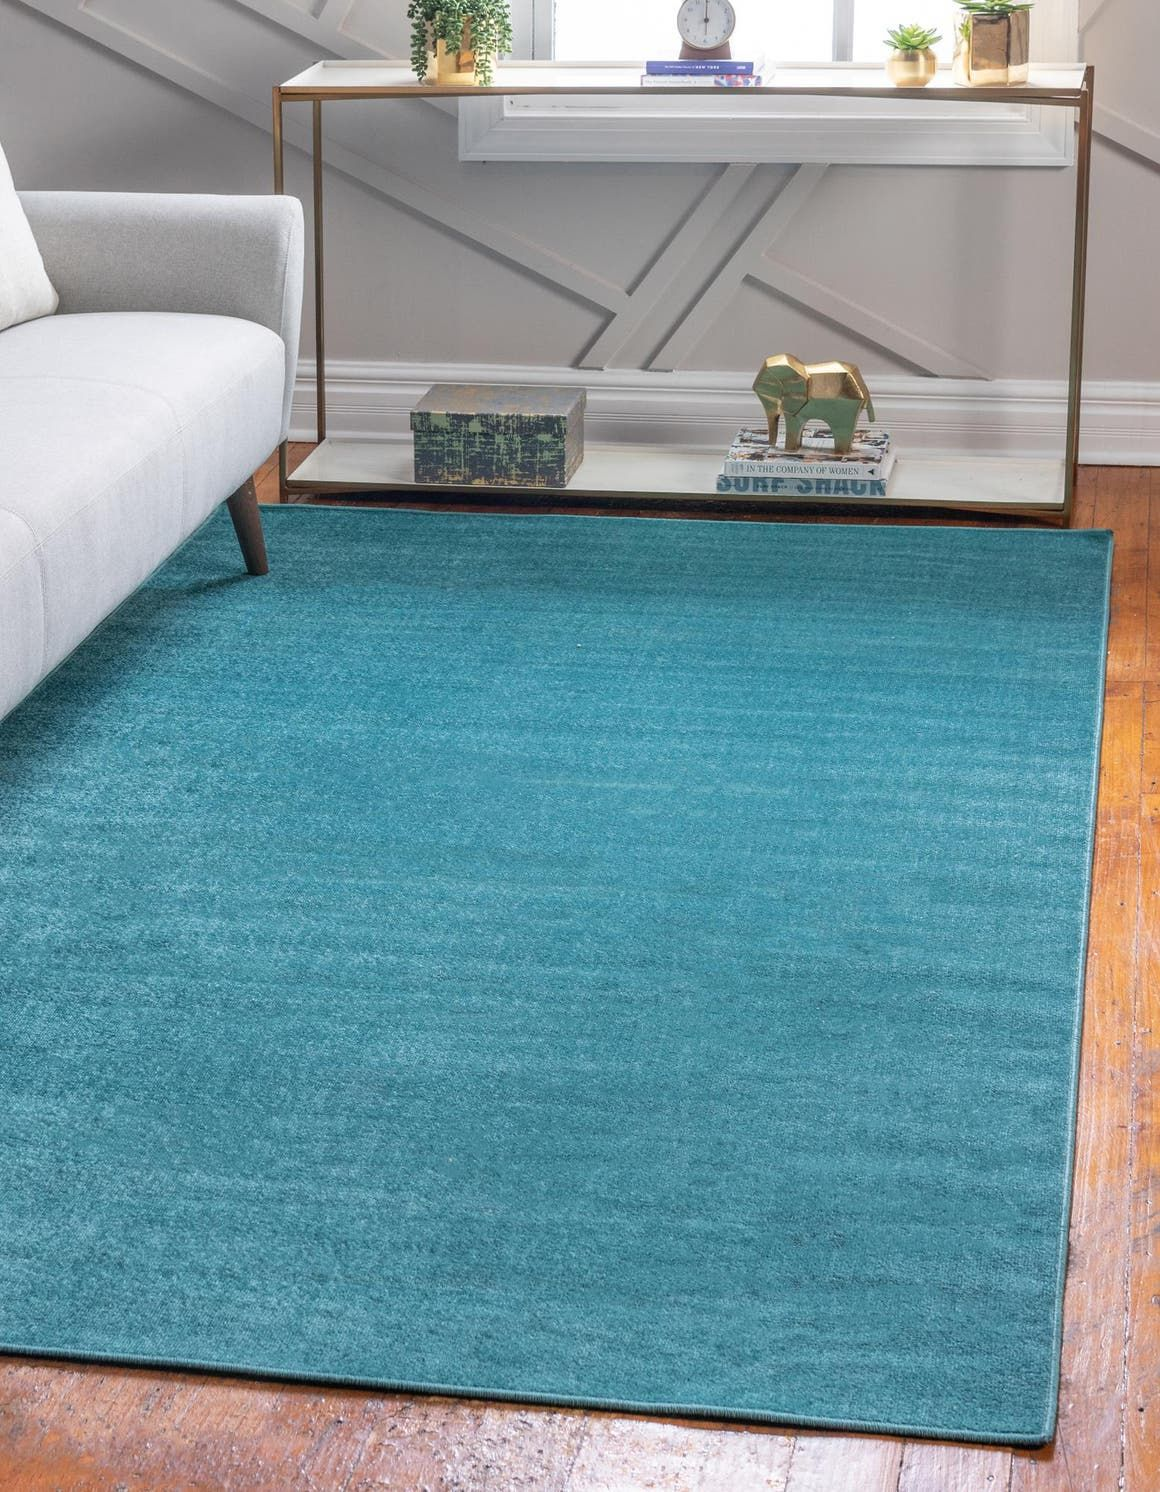 Teal Tribeca Area Rug In 2020 With Images Stunning Rugs Rugs 6x9 Area Rugs